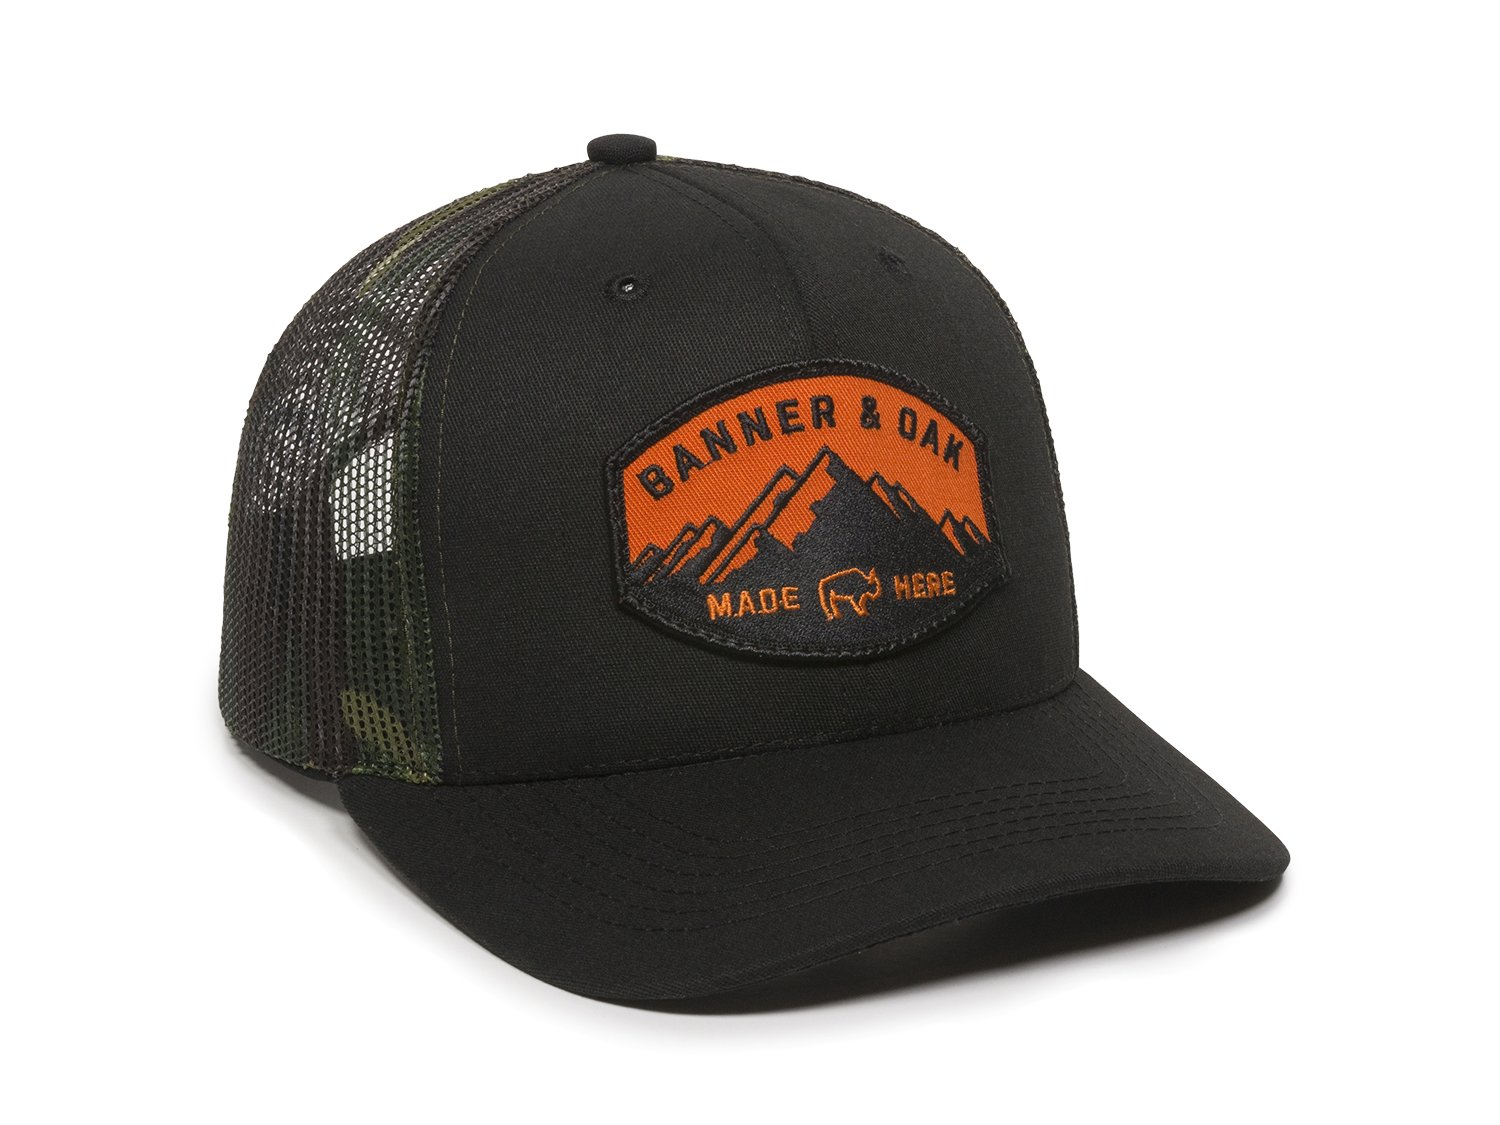 Banner & Oak Trucker Hat